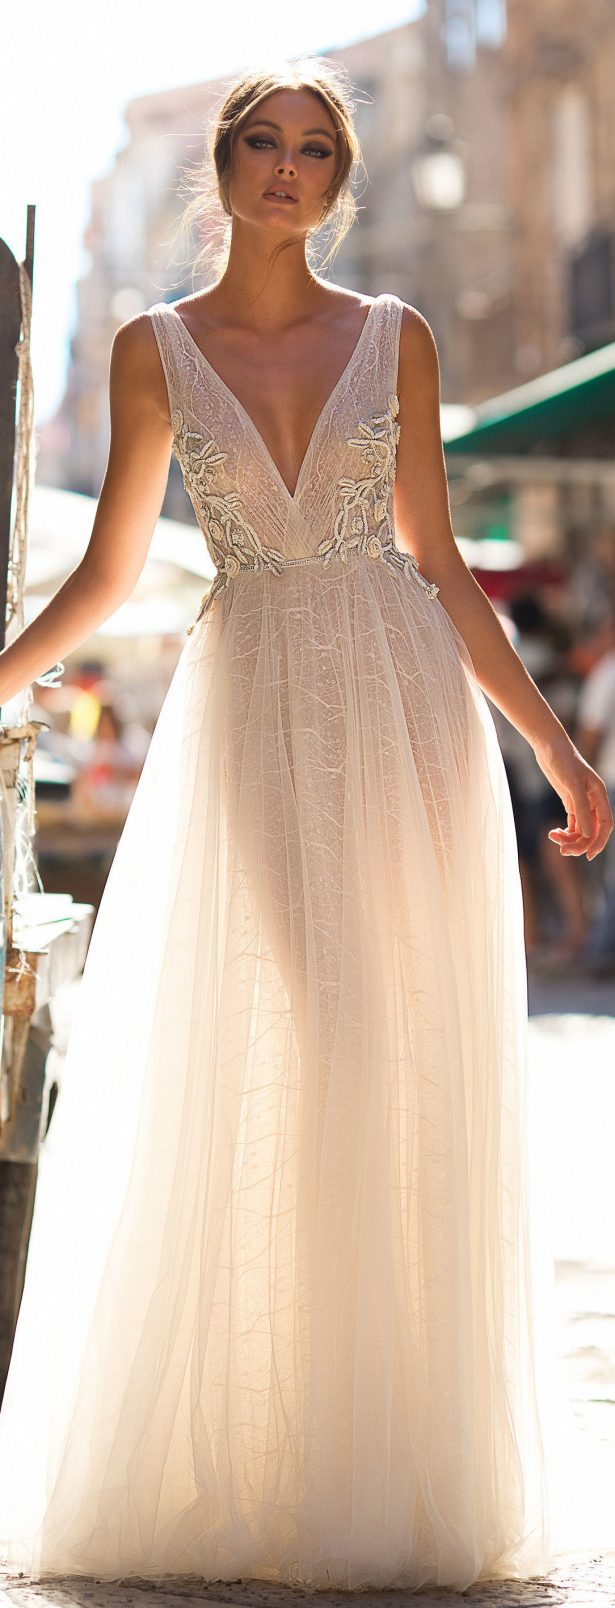 MUSE by Berta : Sicily Wedding Dress Collection